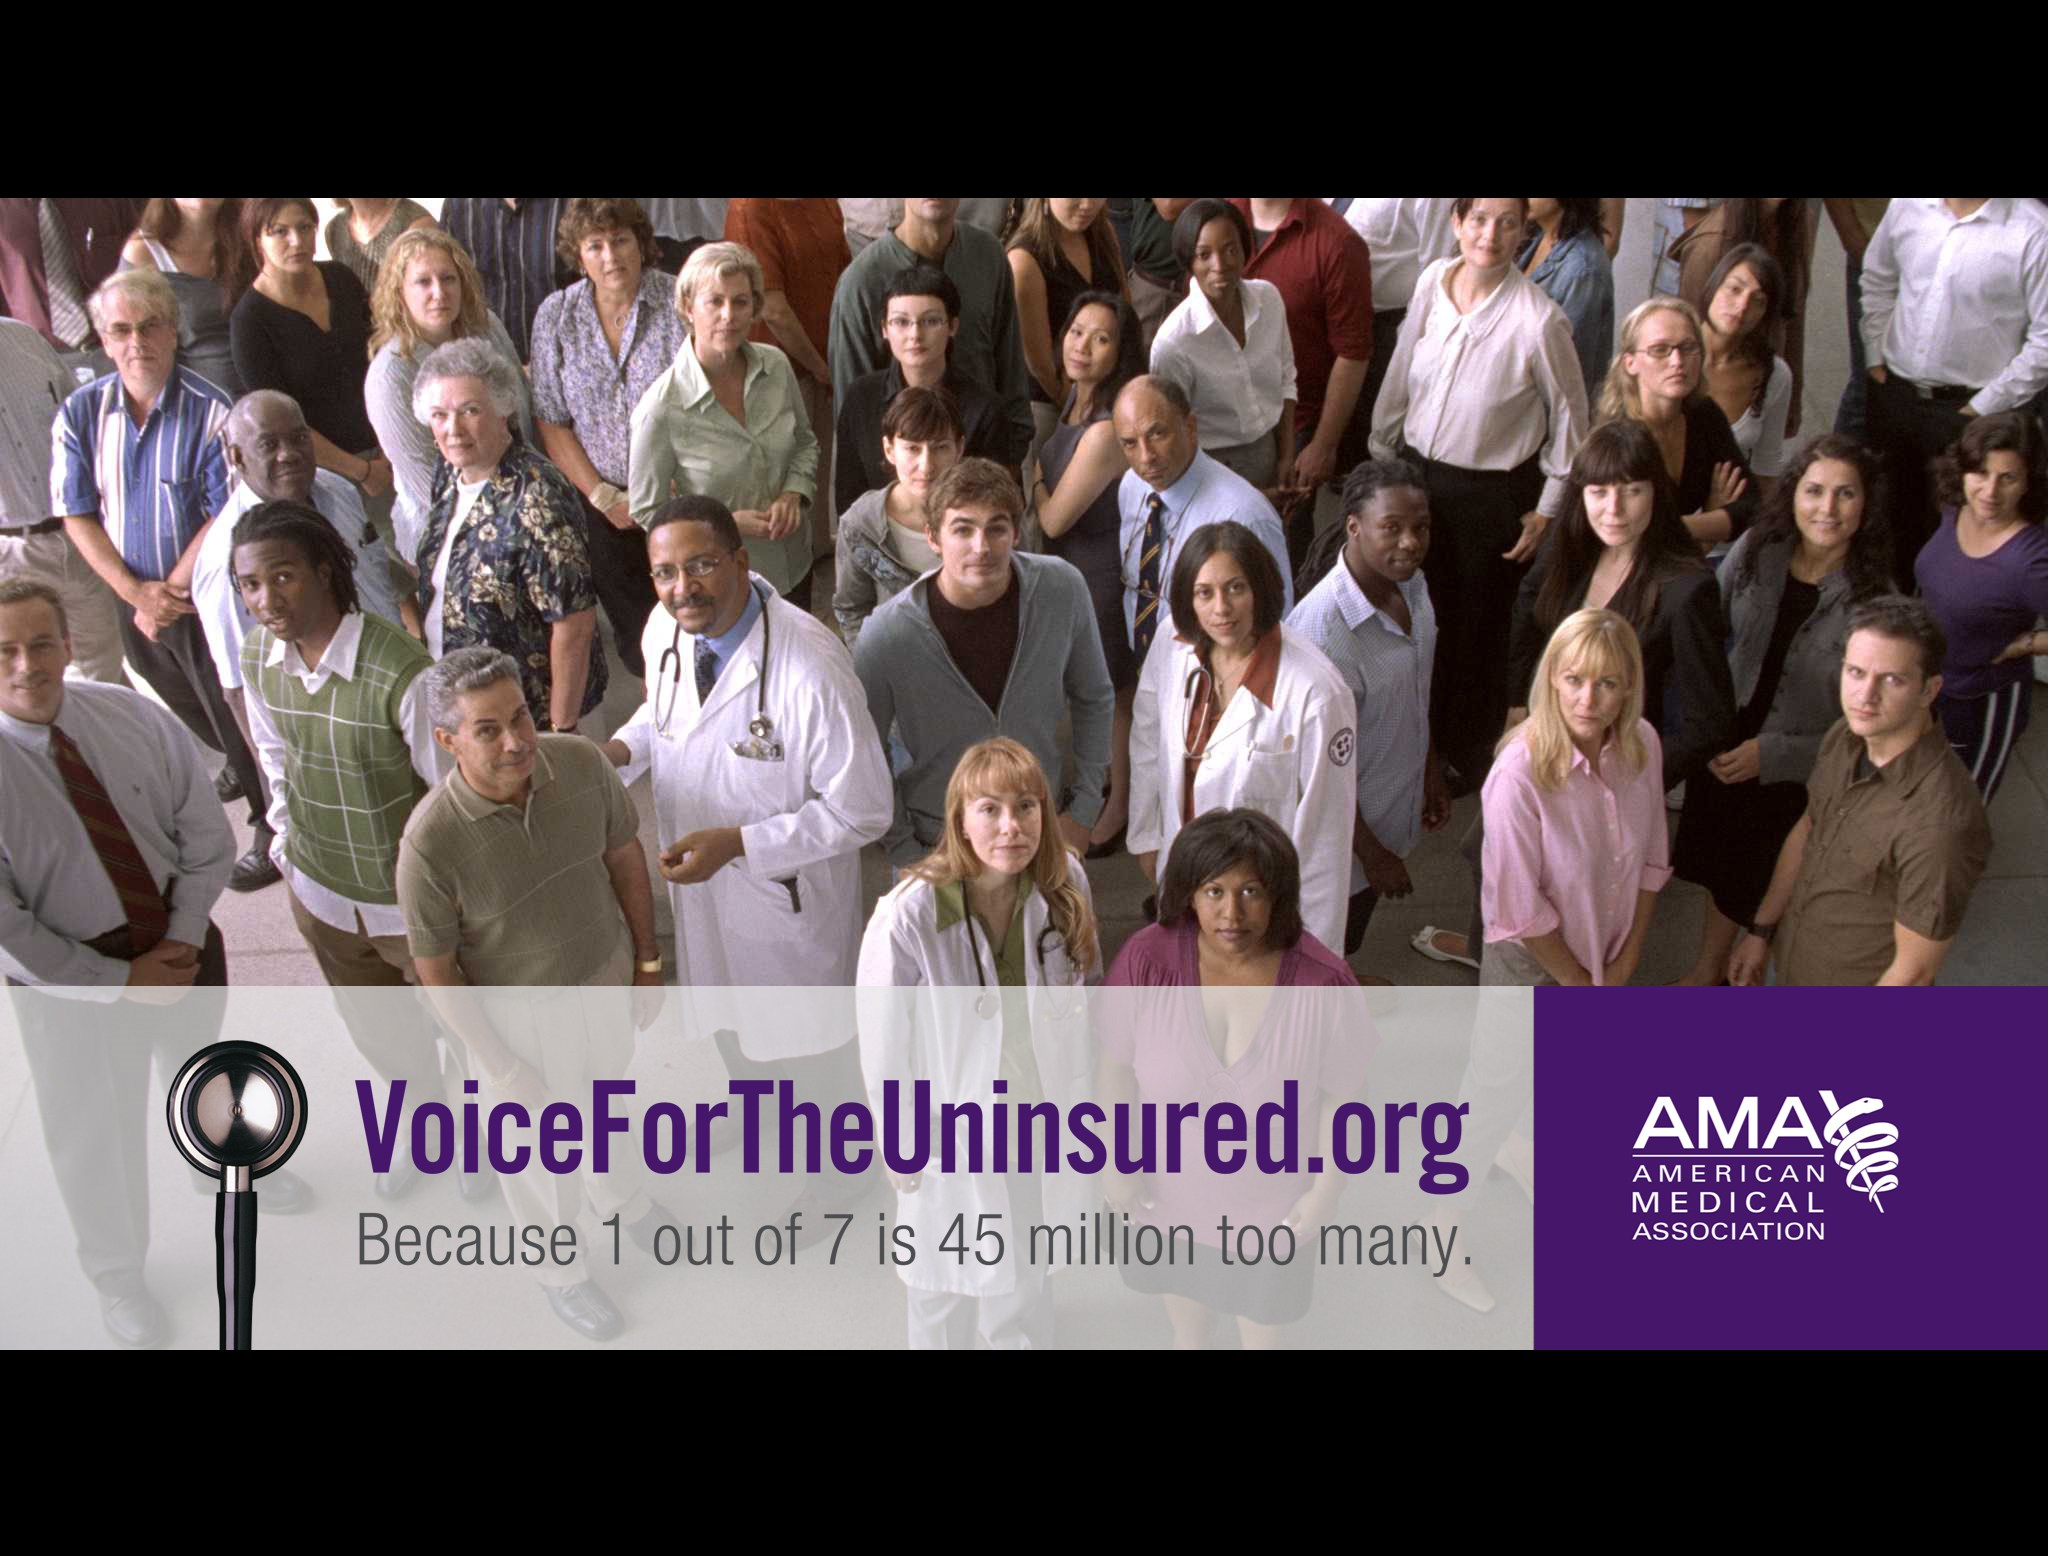 AMA TV ads launch on Labor Day